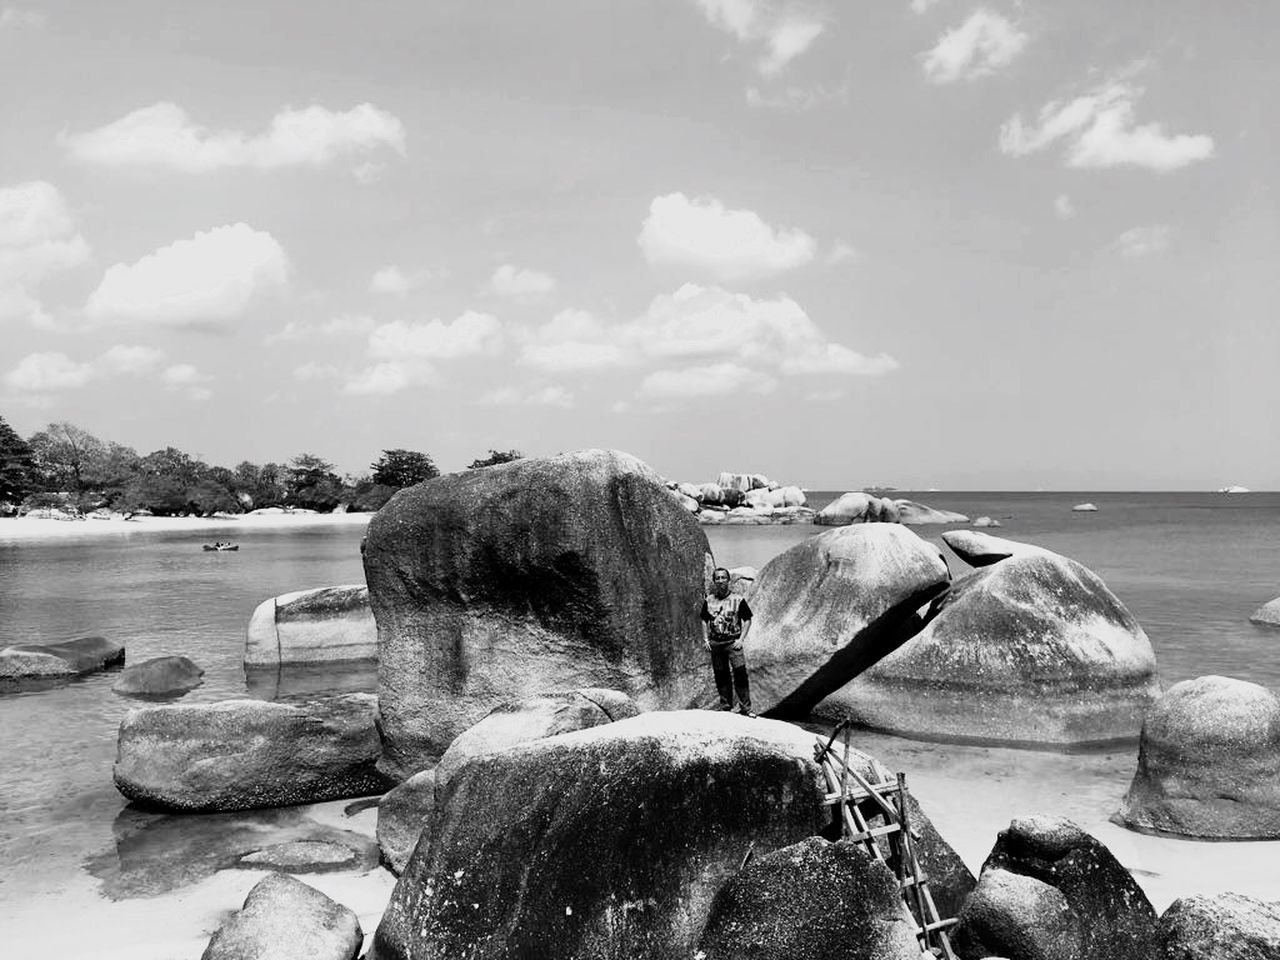 sky, water, cloud - sky, nature, day, sea, land, beauty in nature, rock, scenics - nature, solid, rock - object, no people, outdoors, tranquility, beach, tranquil scene, tree, non-urban scene